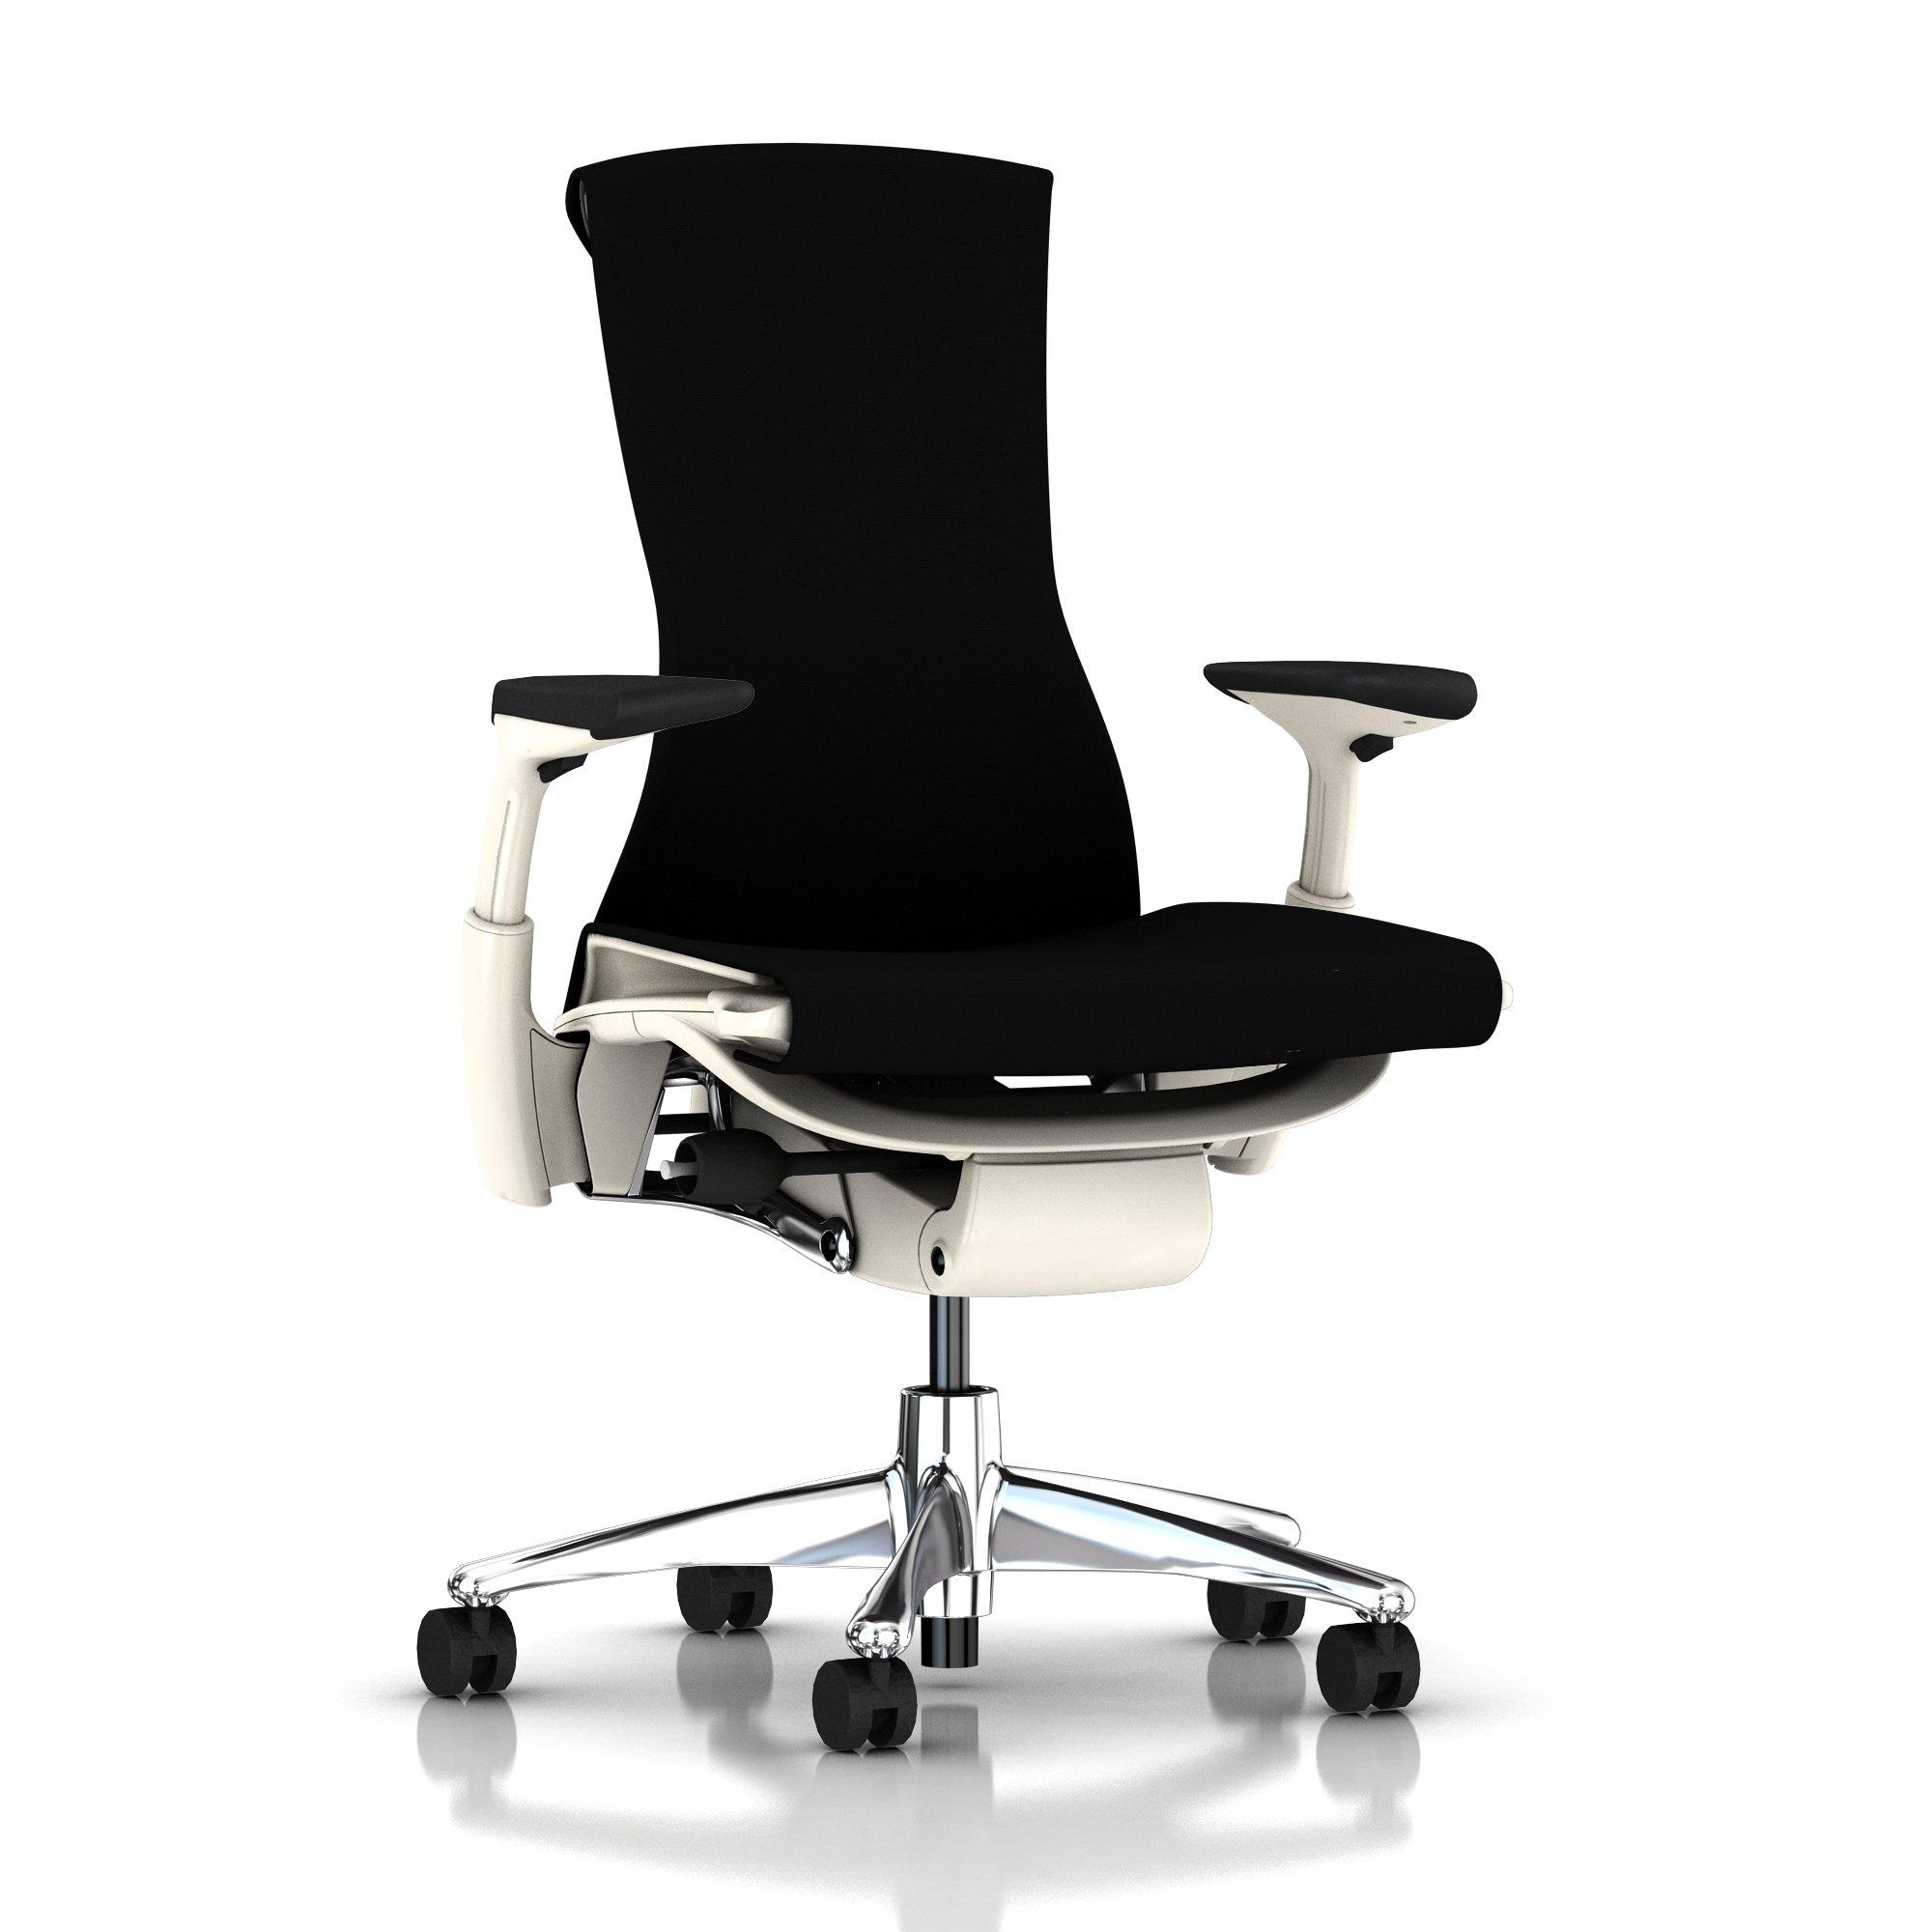 desk chair herman miller stress less chairs embody colors home office task